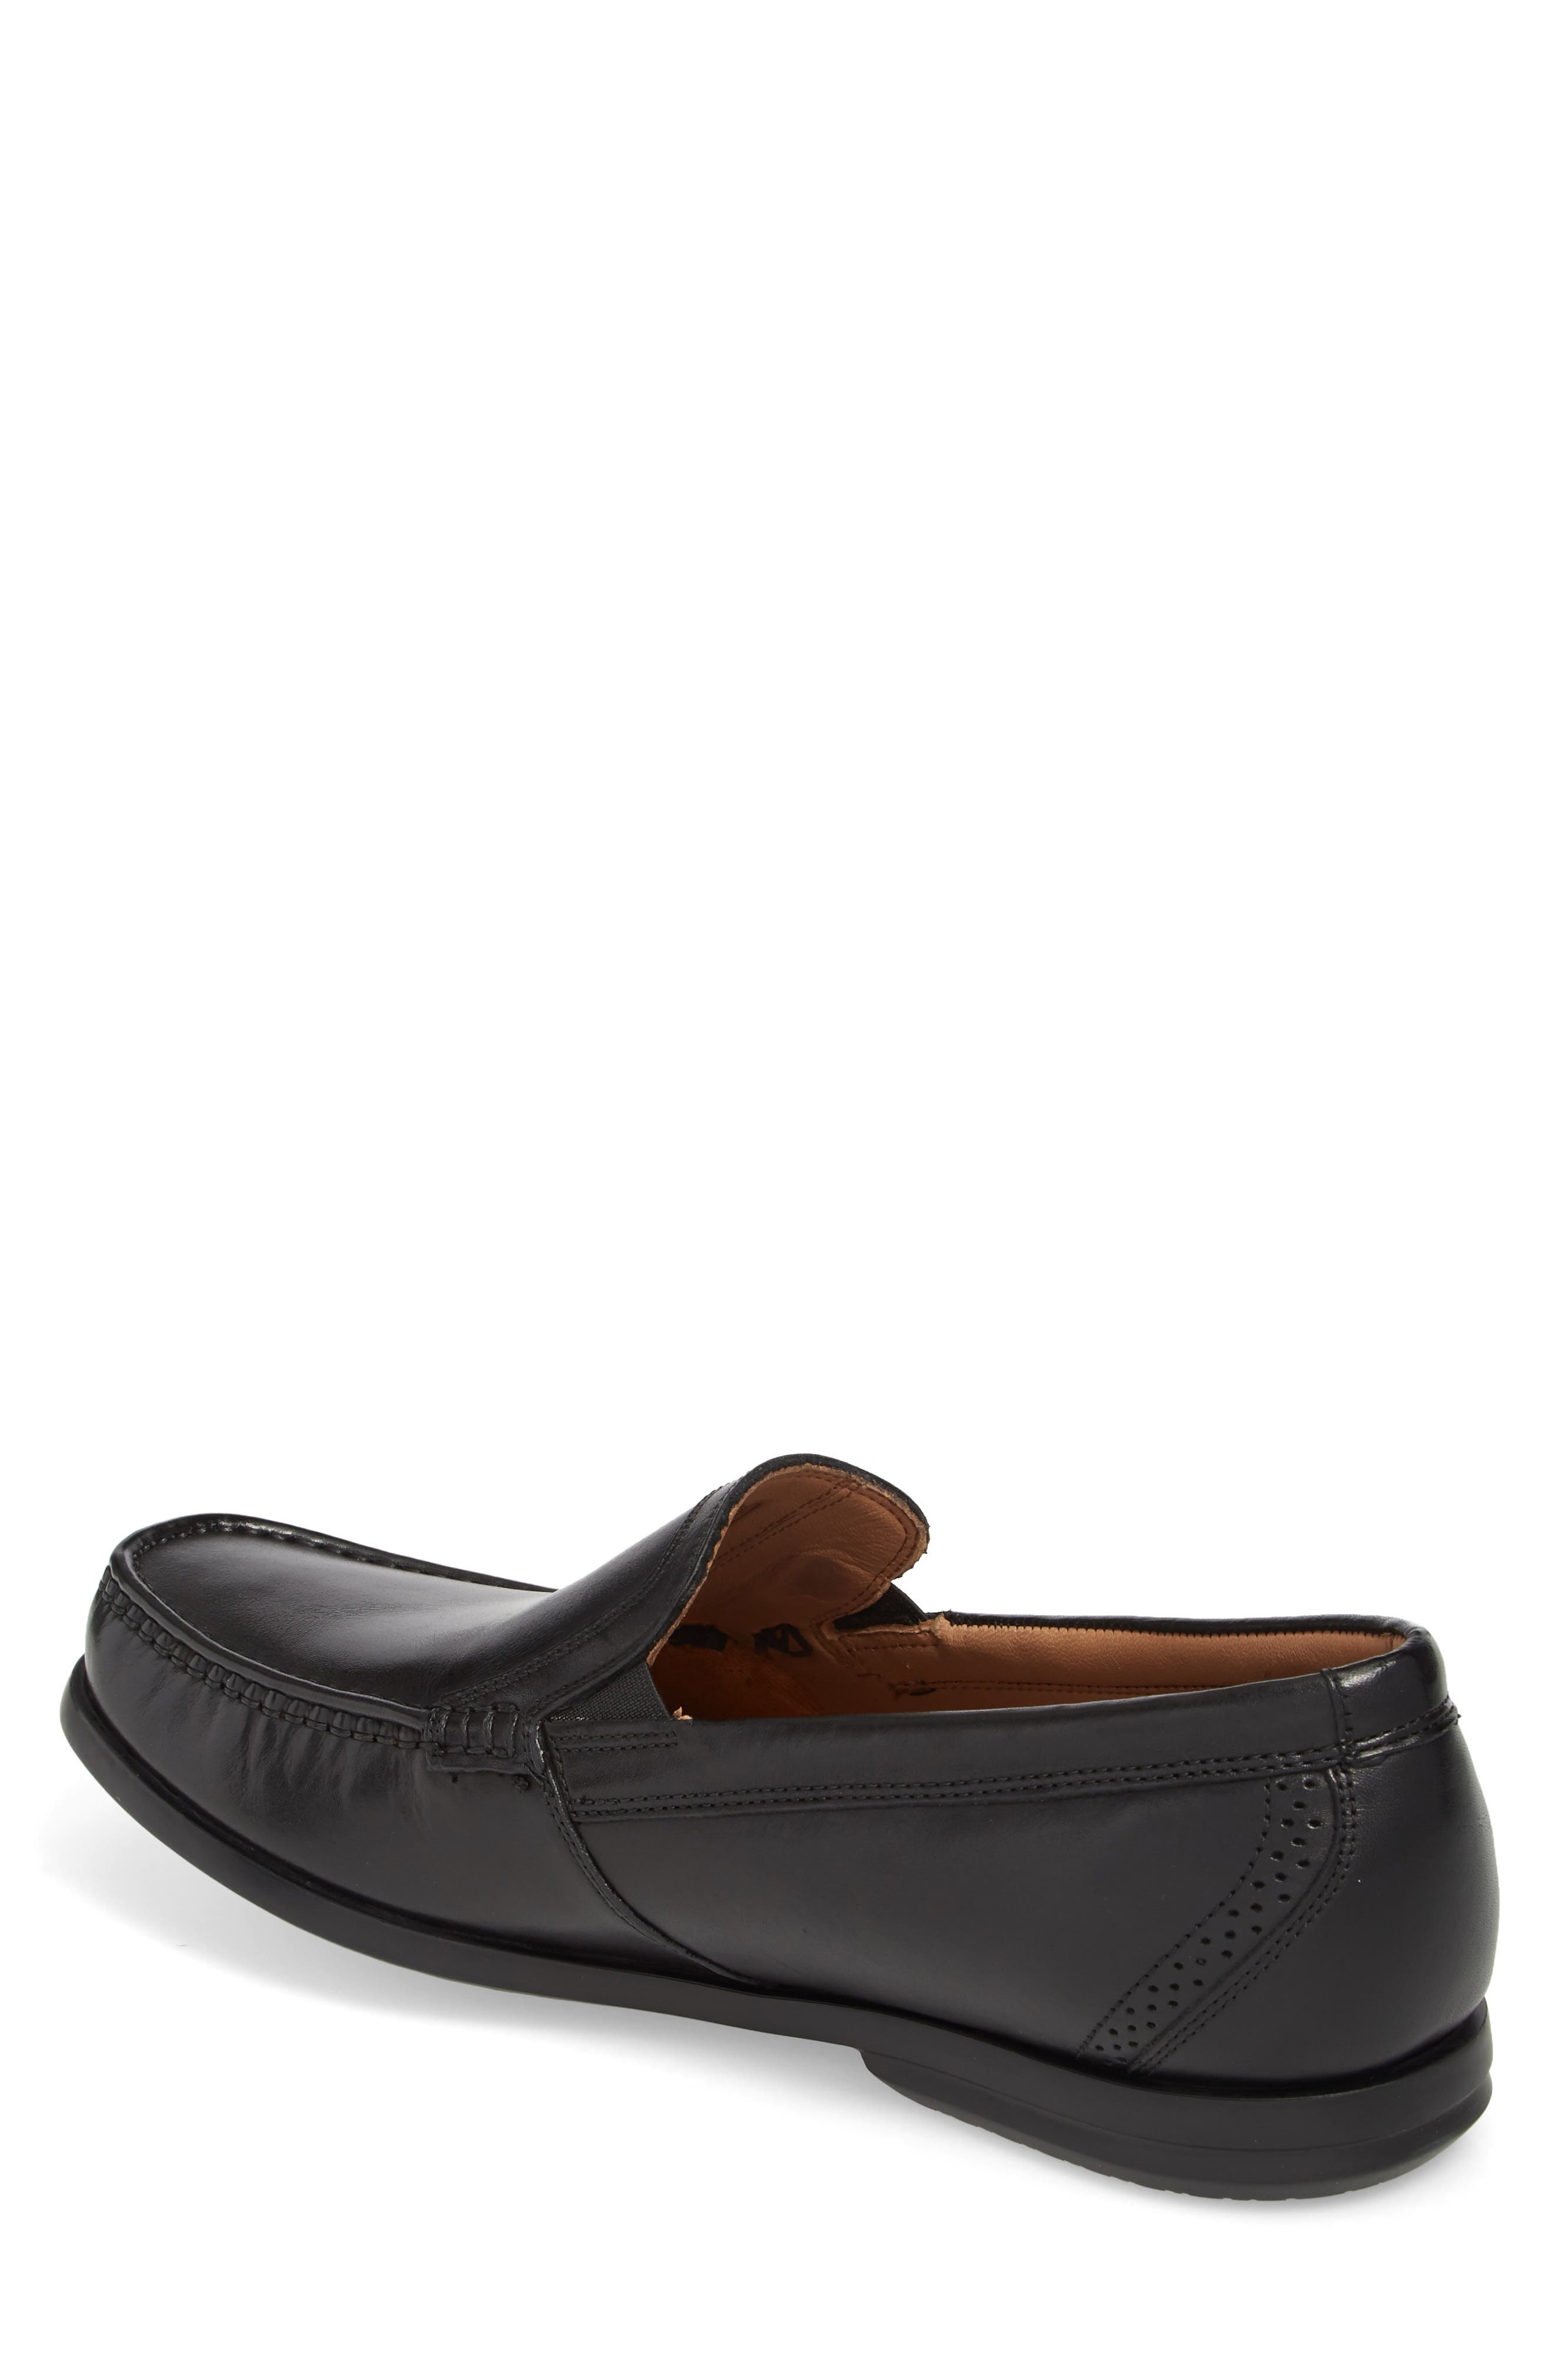 Clarks<sup>®</sup> Ungala Free Venetian Loafer,                             Alternate thumbnail 2, color,                             003